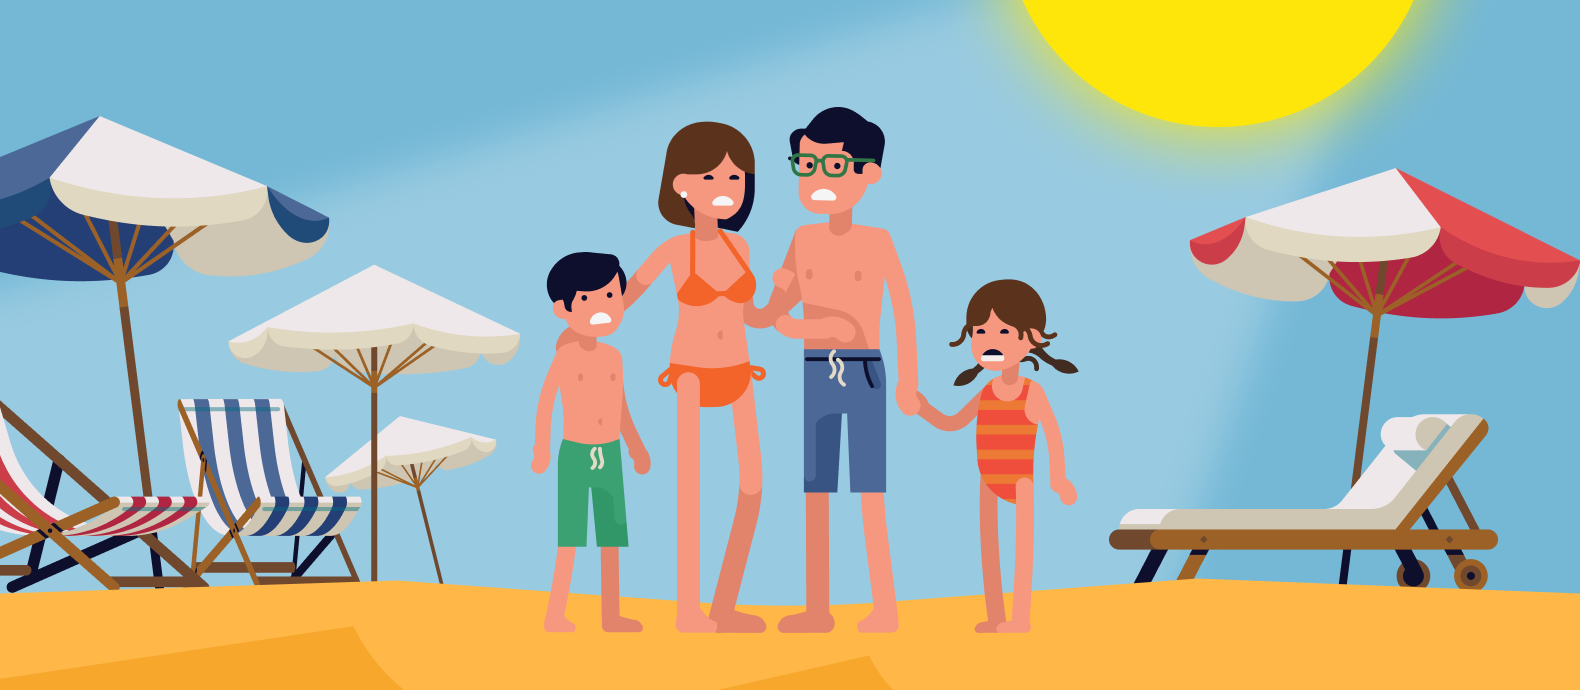 Sea, sun, and fake sunscreen: Top industries at risk in summer